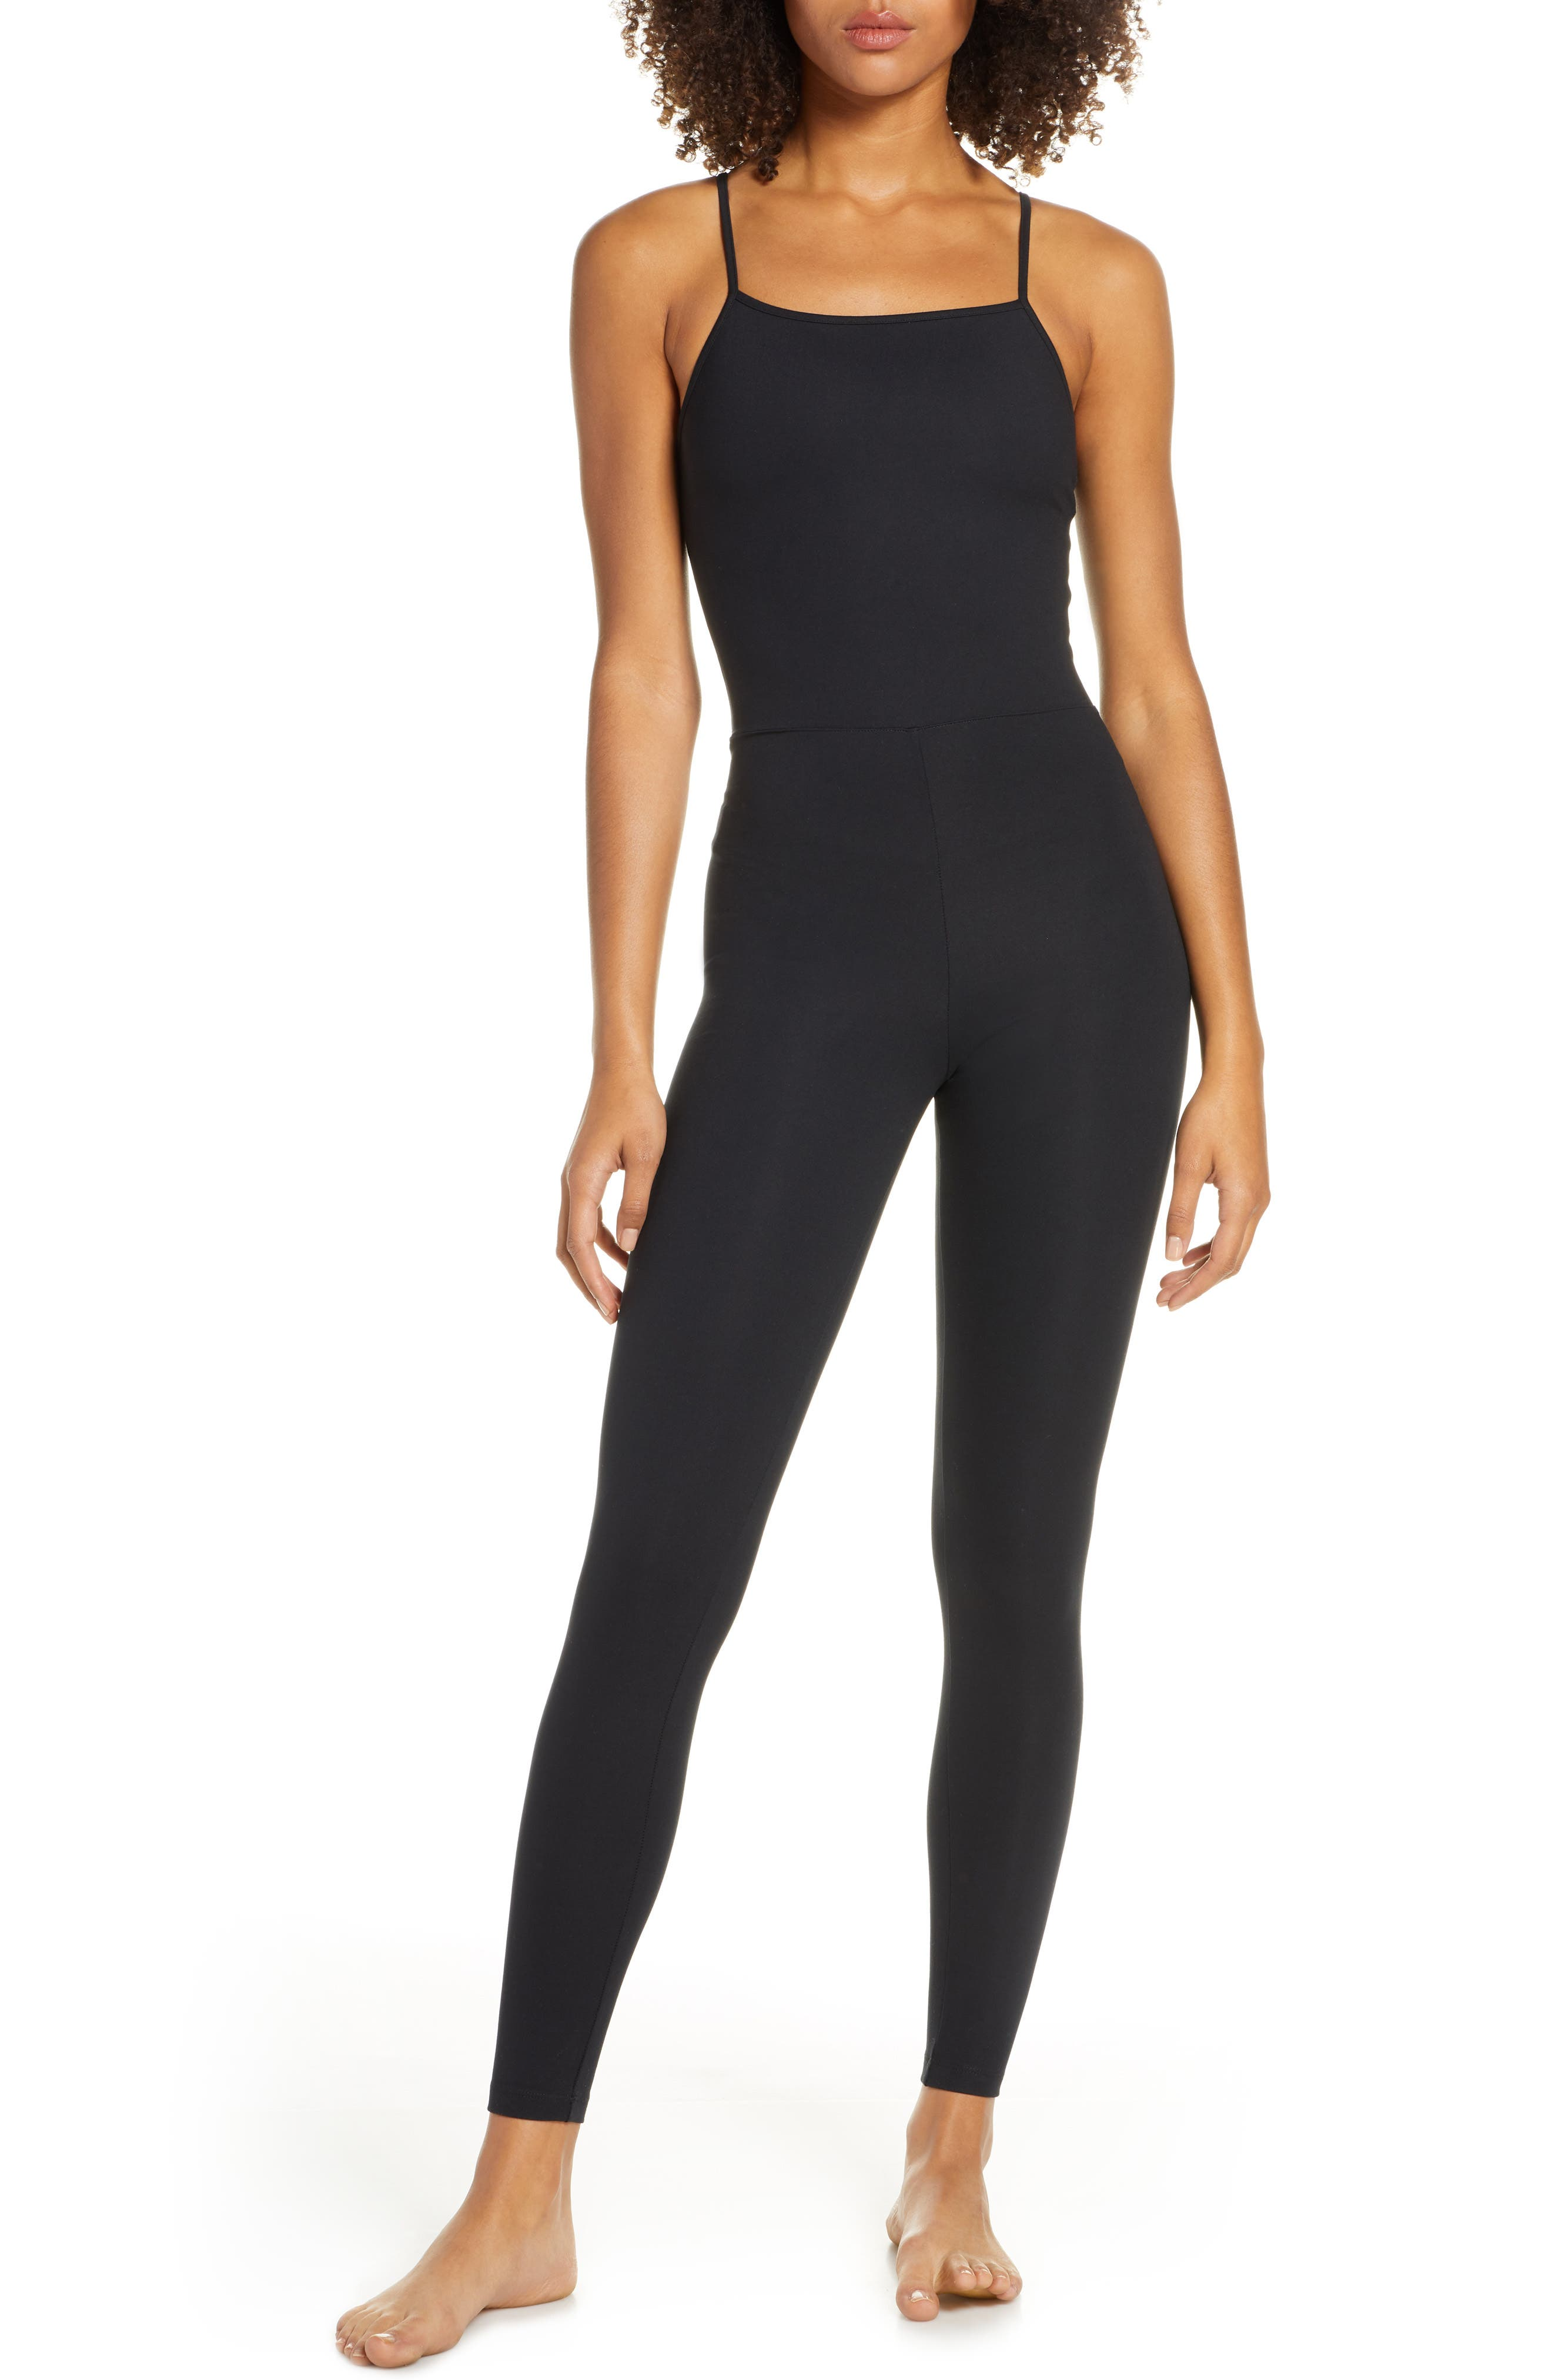 Girlfriend Collective Unitard, Black